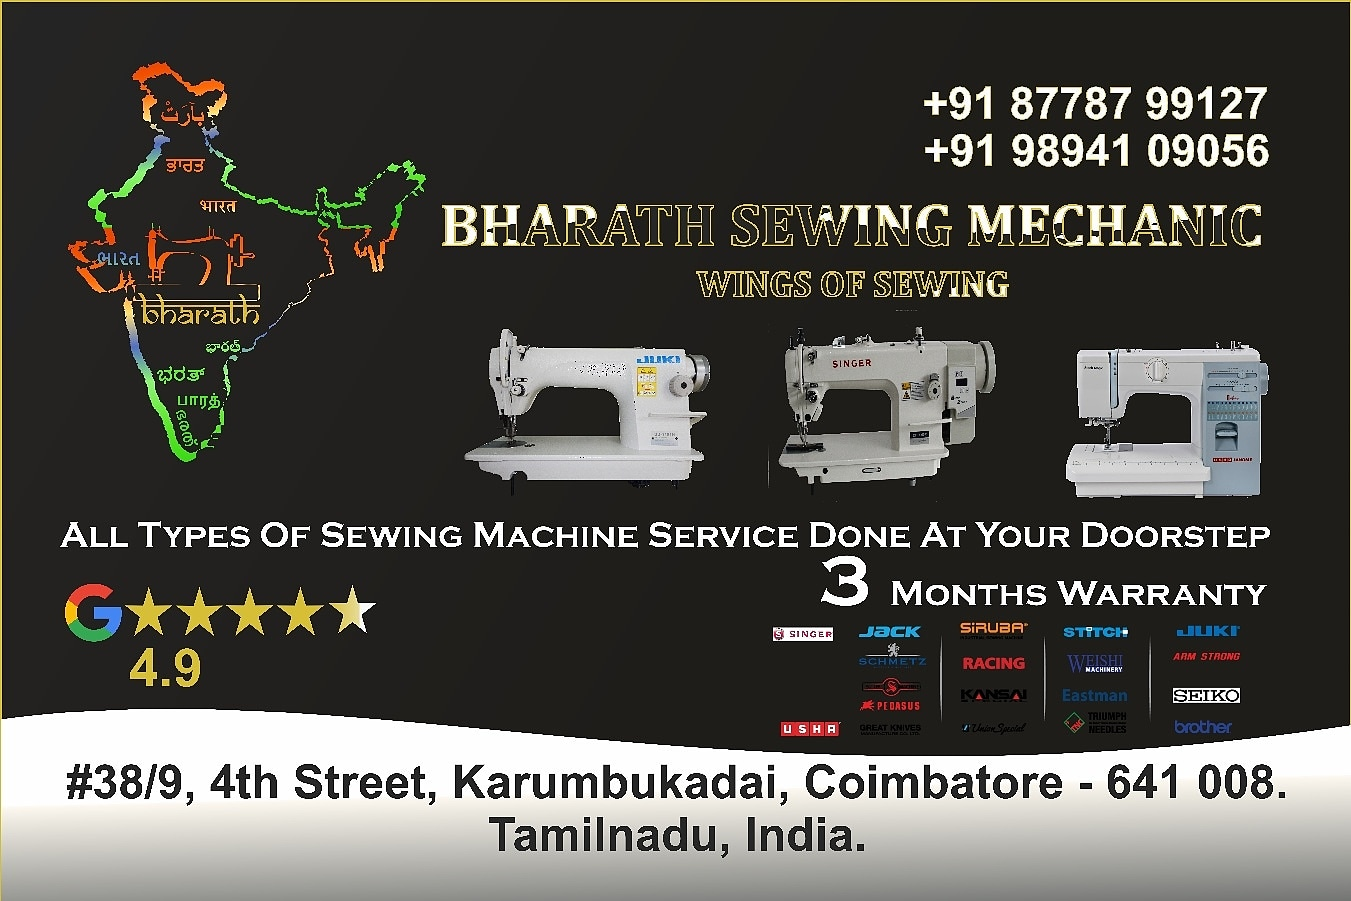 Image for Sewing machine repair and service at doorstep service